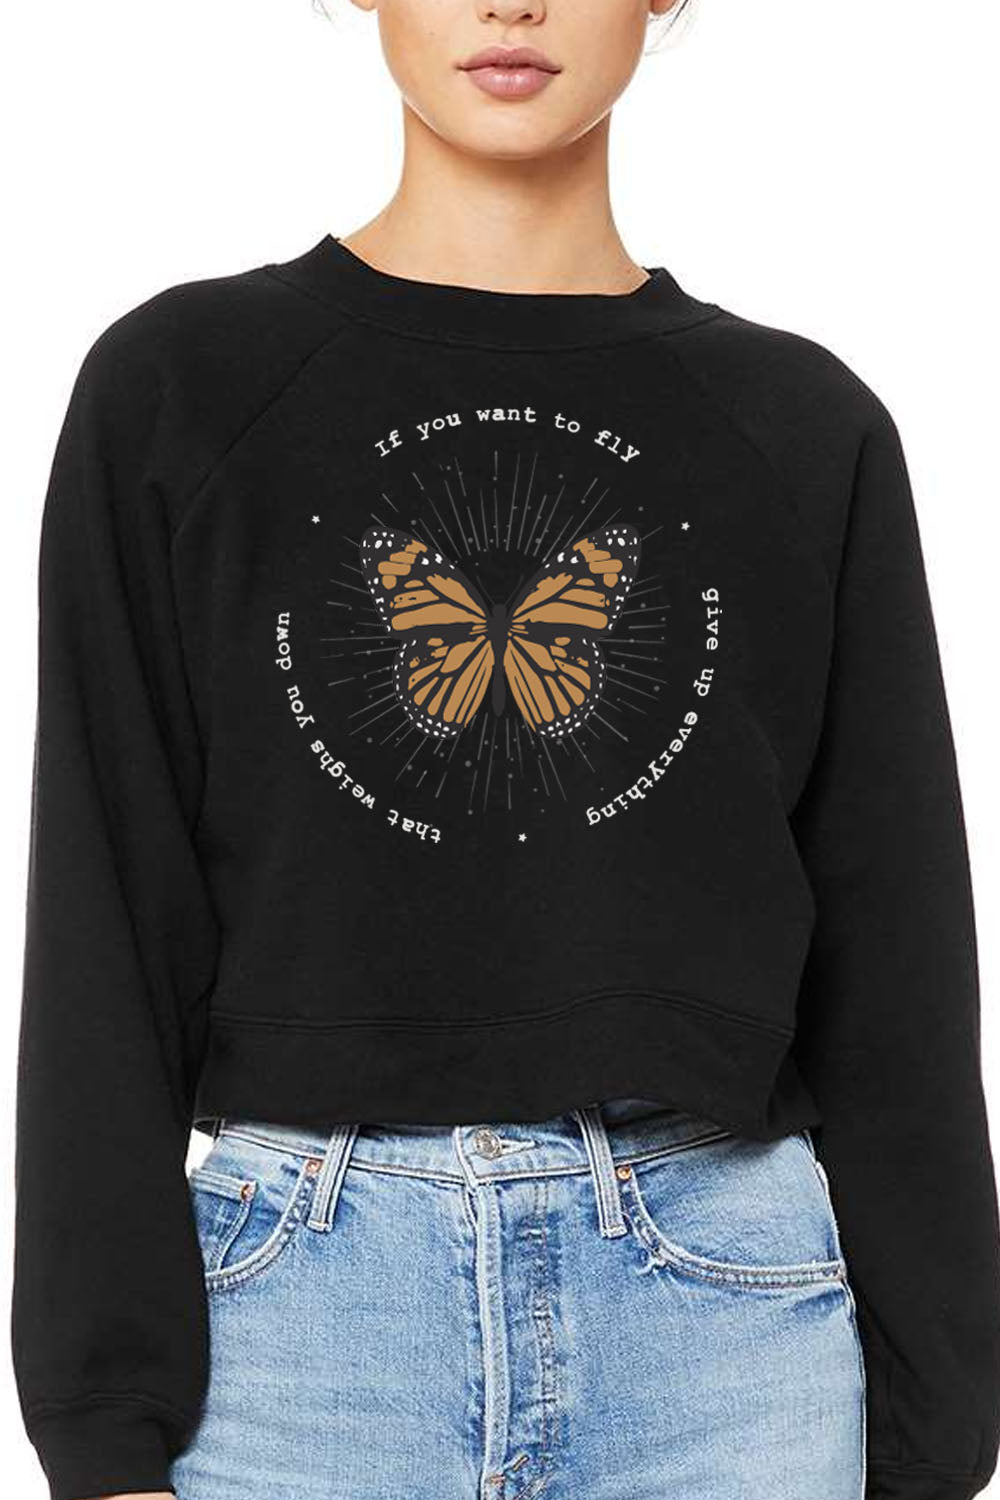 NESSA RAGLAN CREWNECK - IF YOU WANT TO FLY